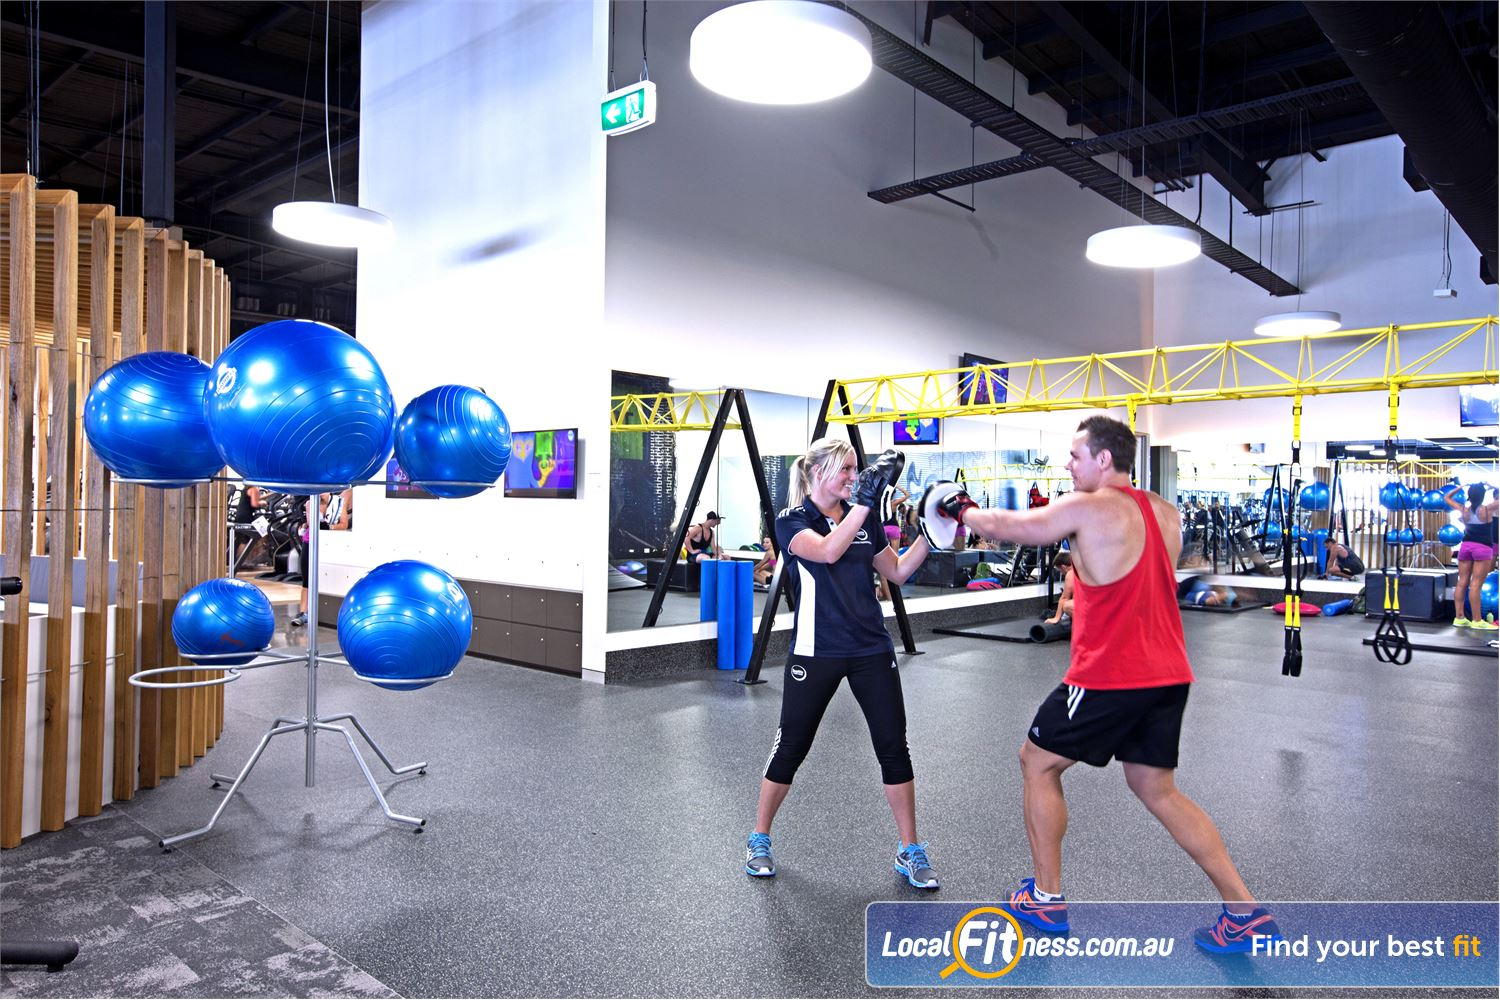 Goodlife Health Clubs Maroochydore Goodlife Maroochydore personal training is just that...personal